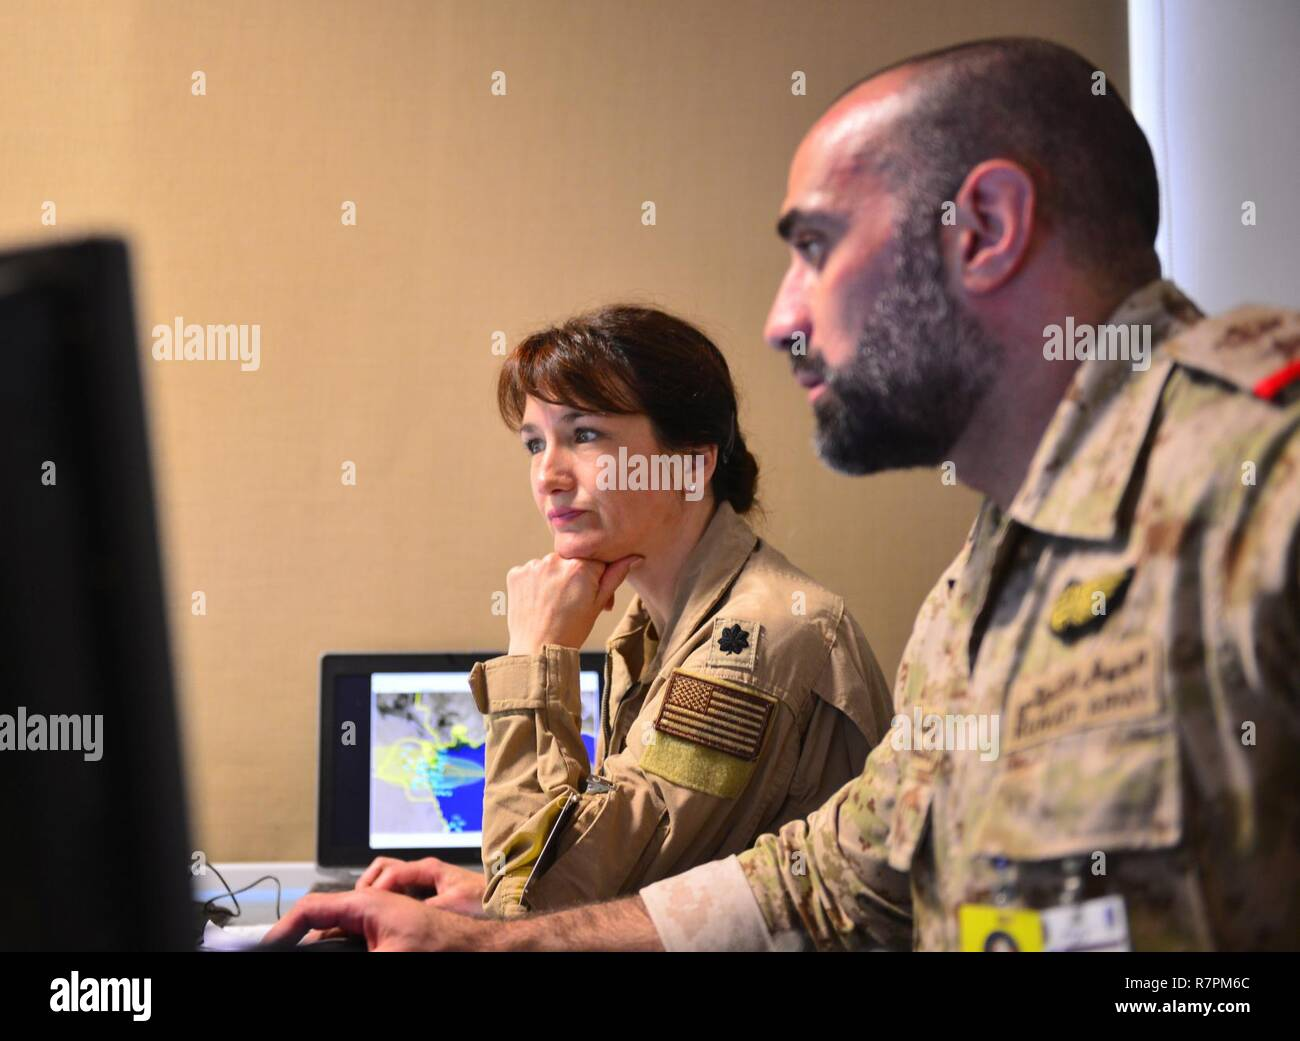 Kuwait Air Force Stock Photos & Kuwait Air Force Stock